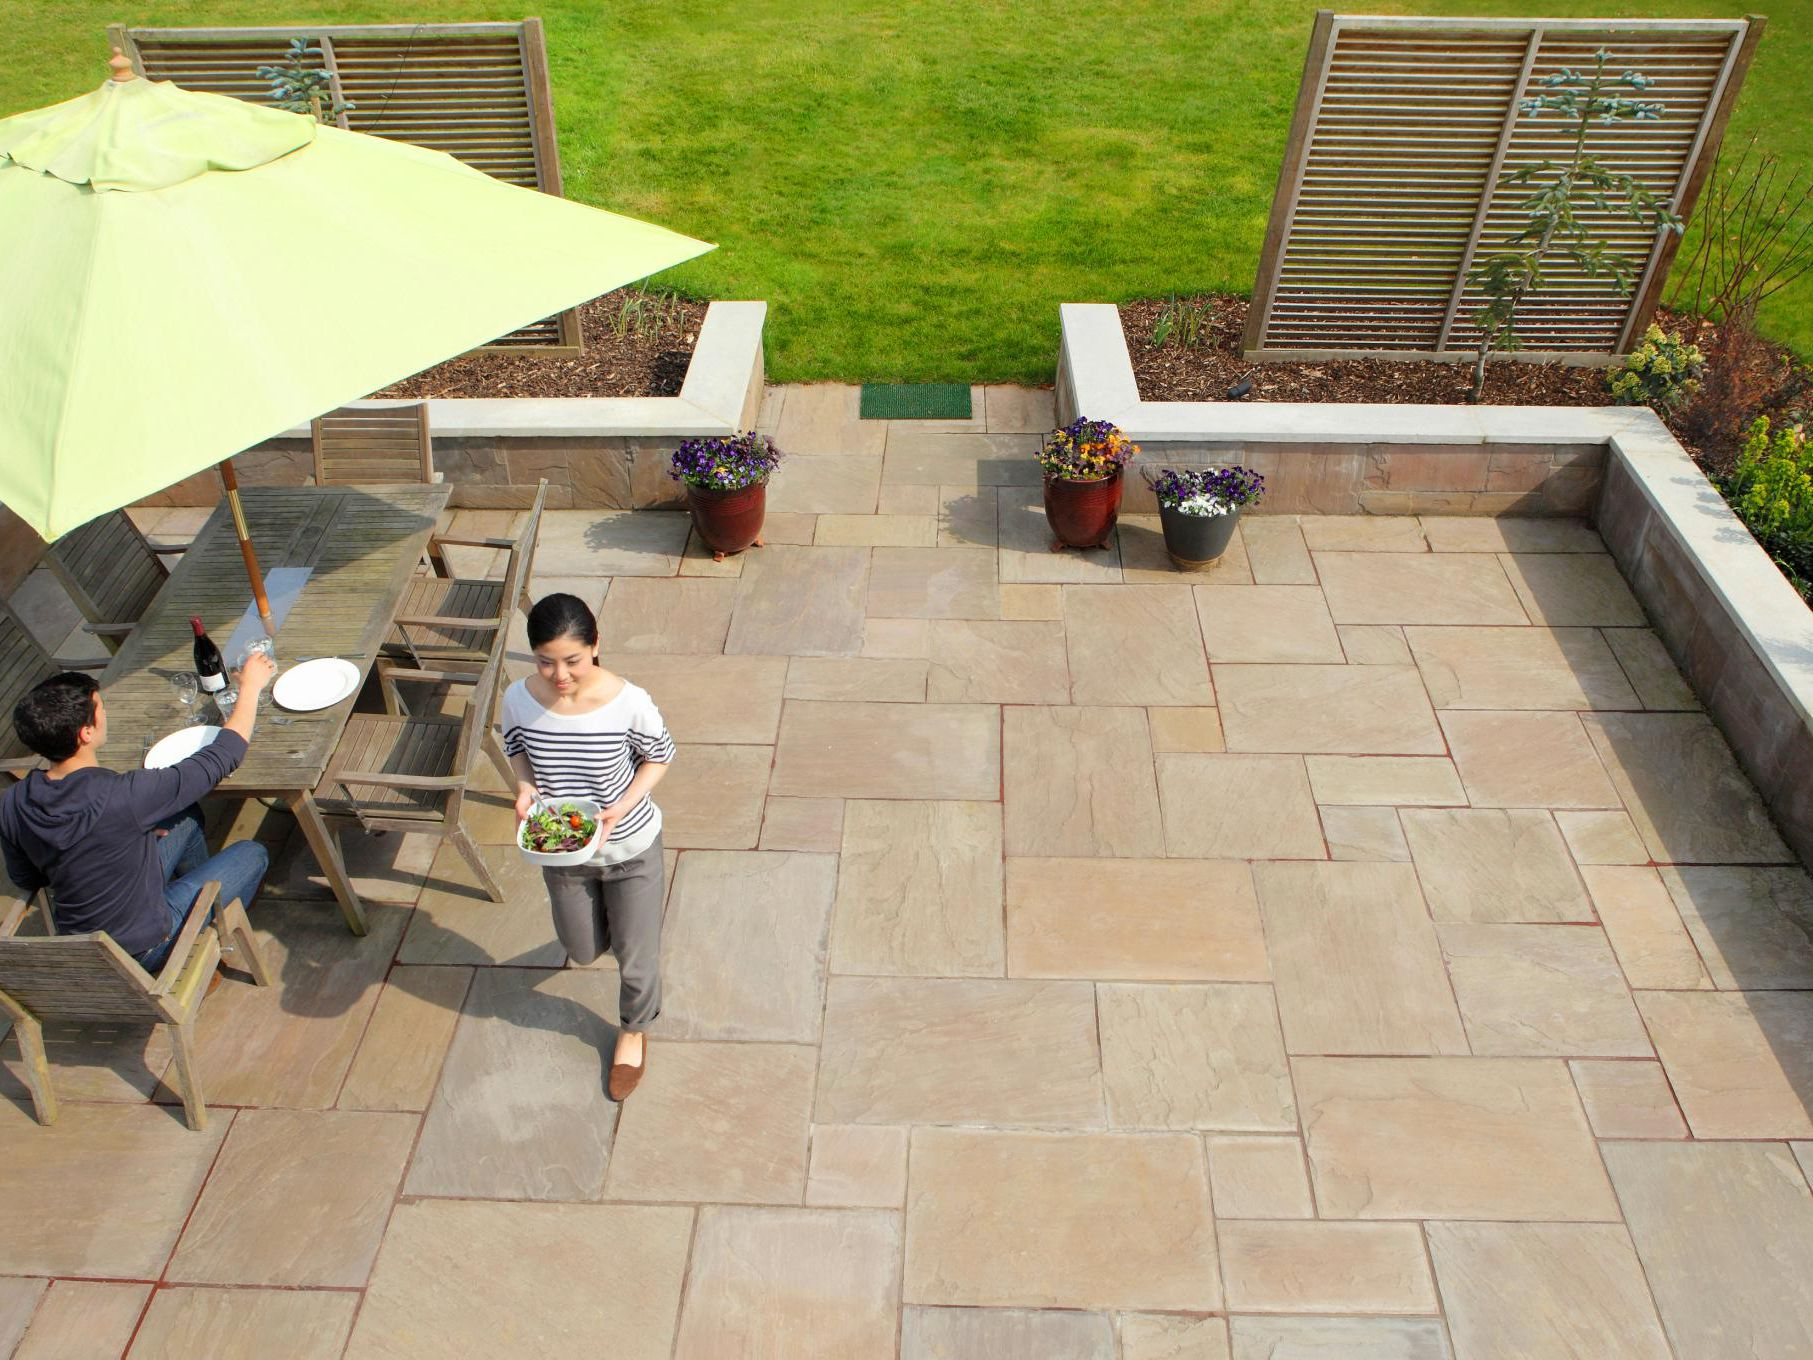 Types Of Tiles You Can Use For Outdoor Patios in Backyard Tiles Ideas